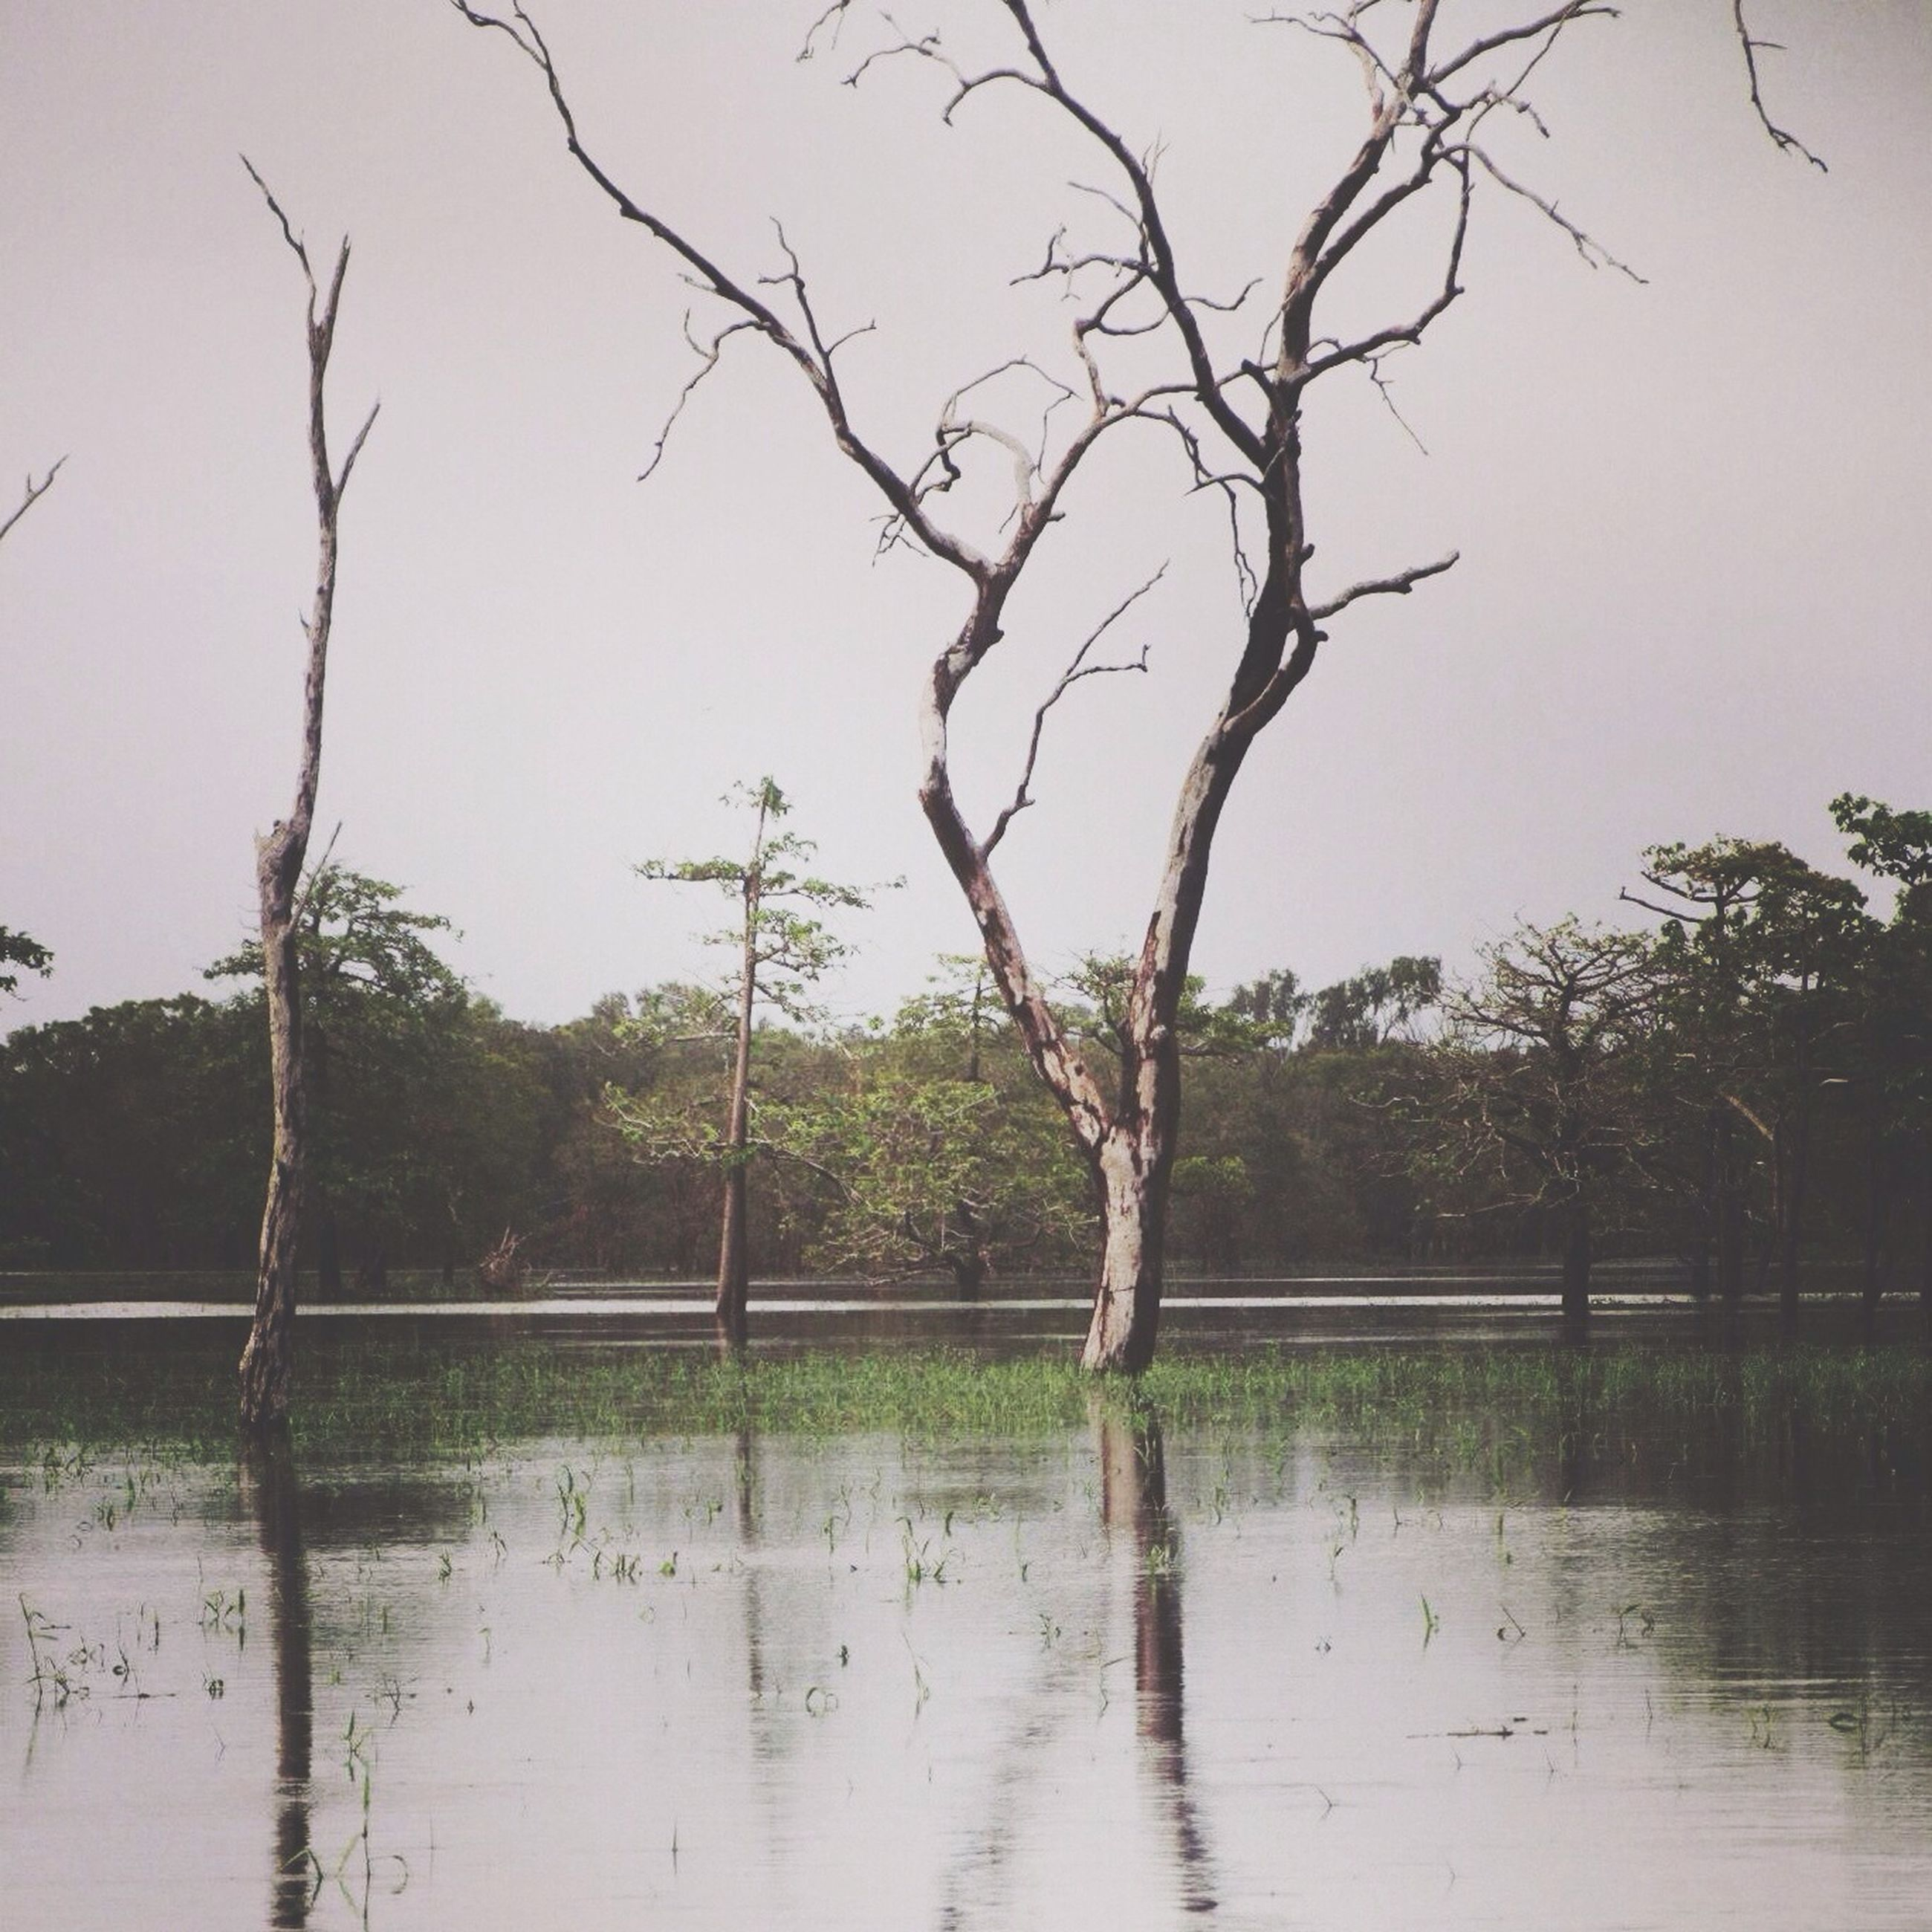 water, tree, bare tree, lake, tranquility, branch, reflection, tranquil scene, nature, waterfront, scenics, beauty in nature, sky, bird, river, pond, day, outdoors, tree trunk, no people